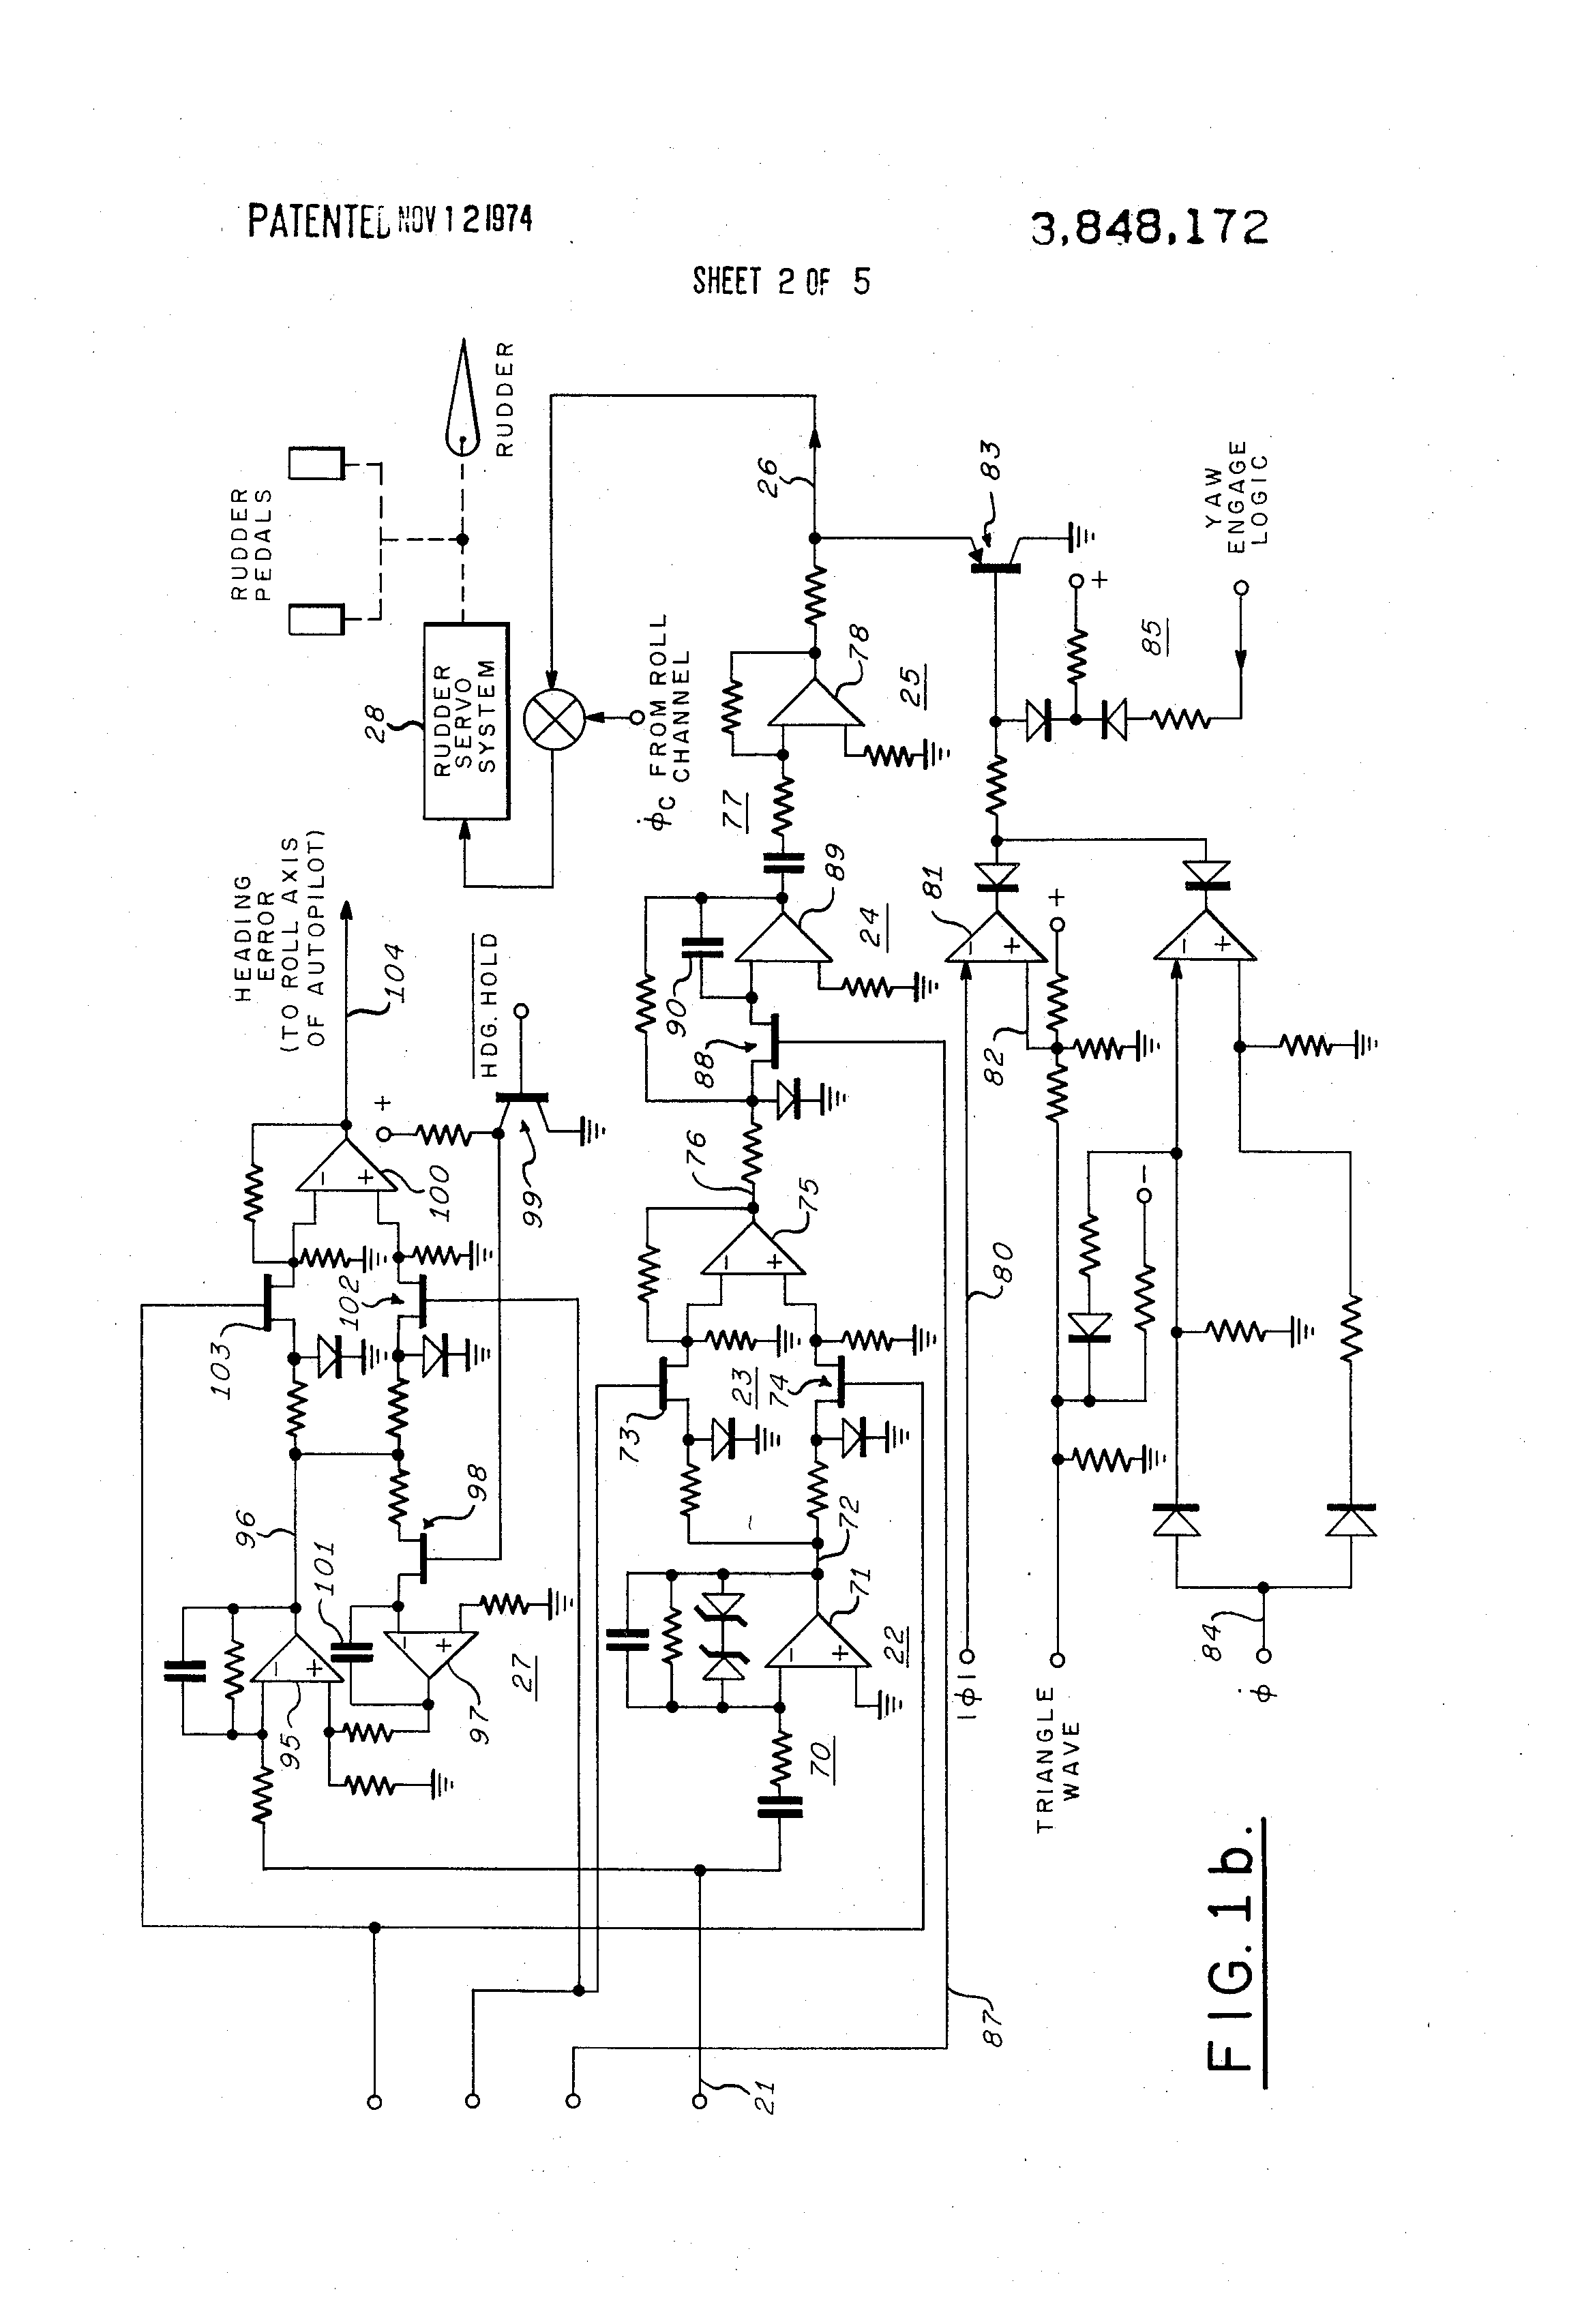 patent us3848172 - yaw damper synchro system for aircraft